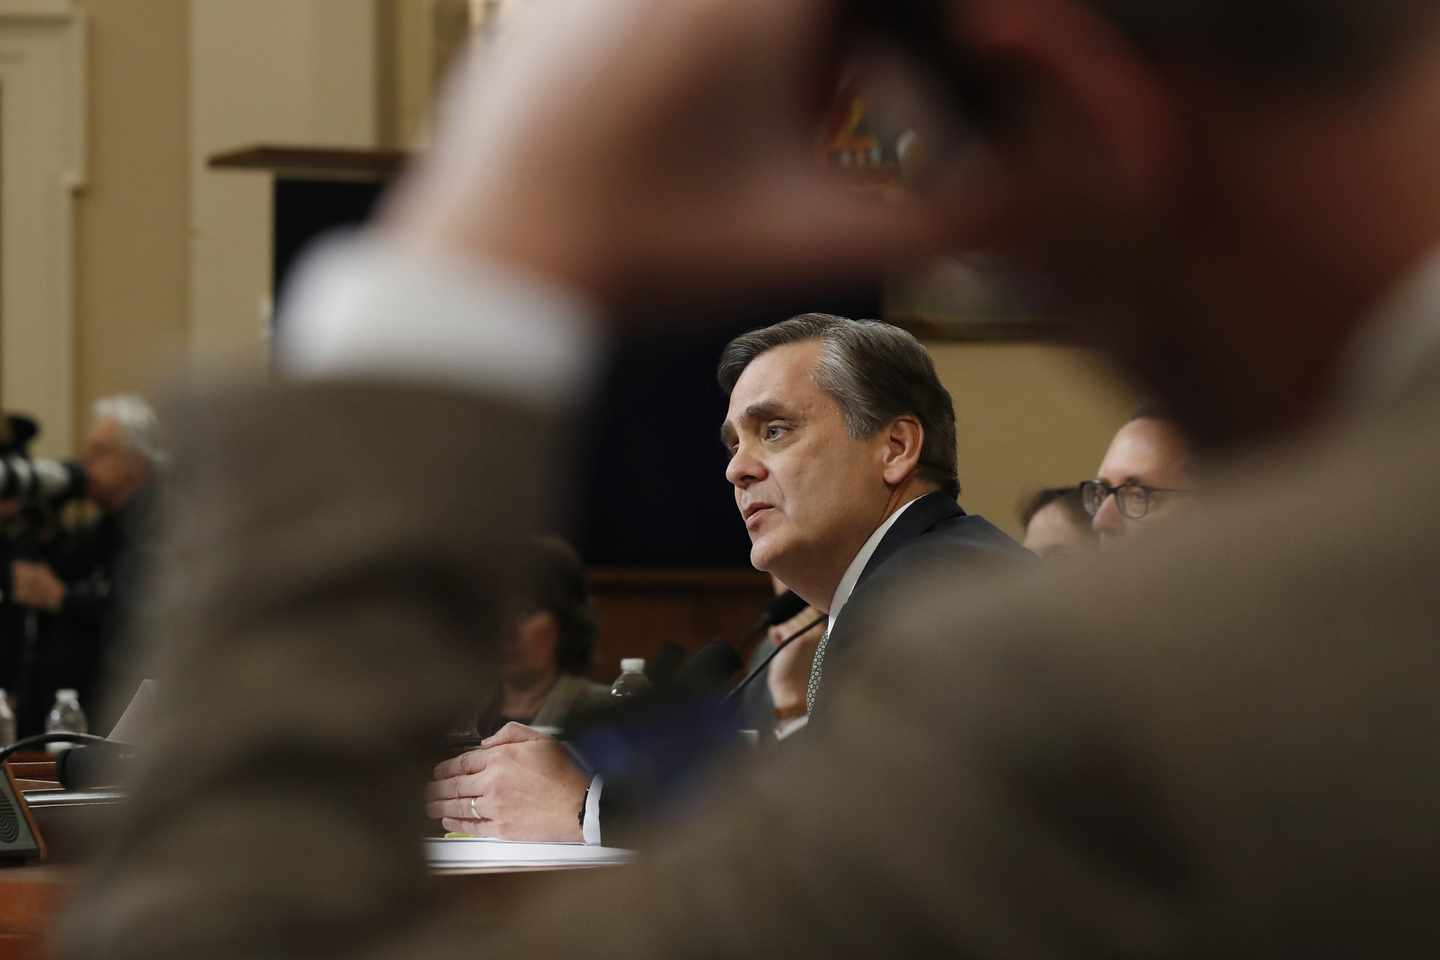 Turley Doesn't Like Trump -- But Republicans Love Turley